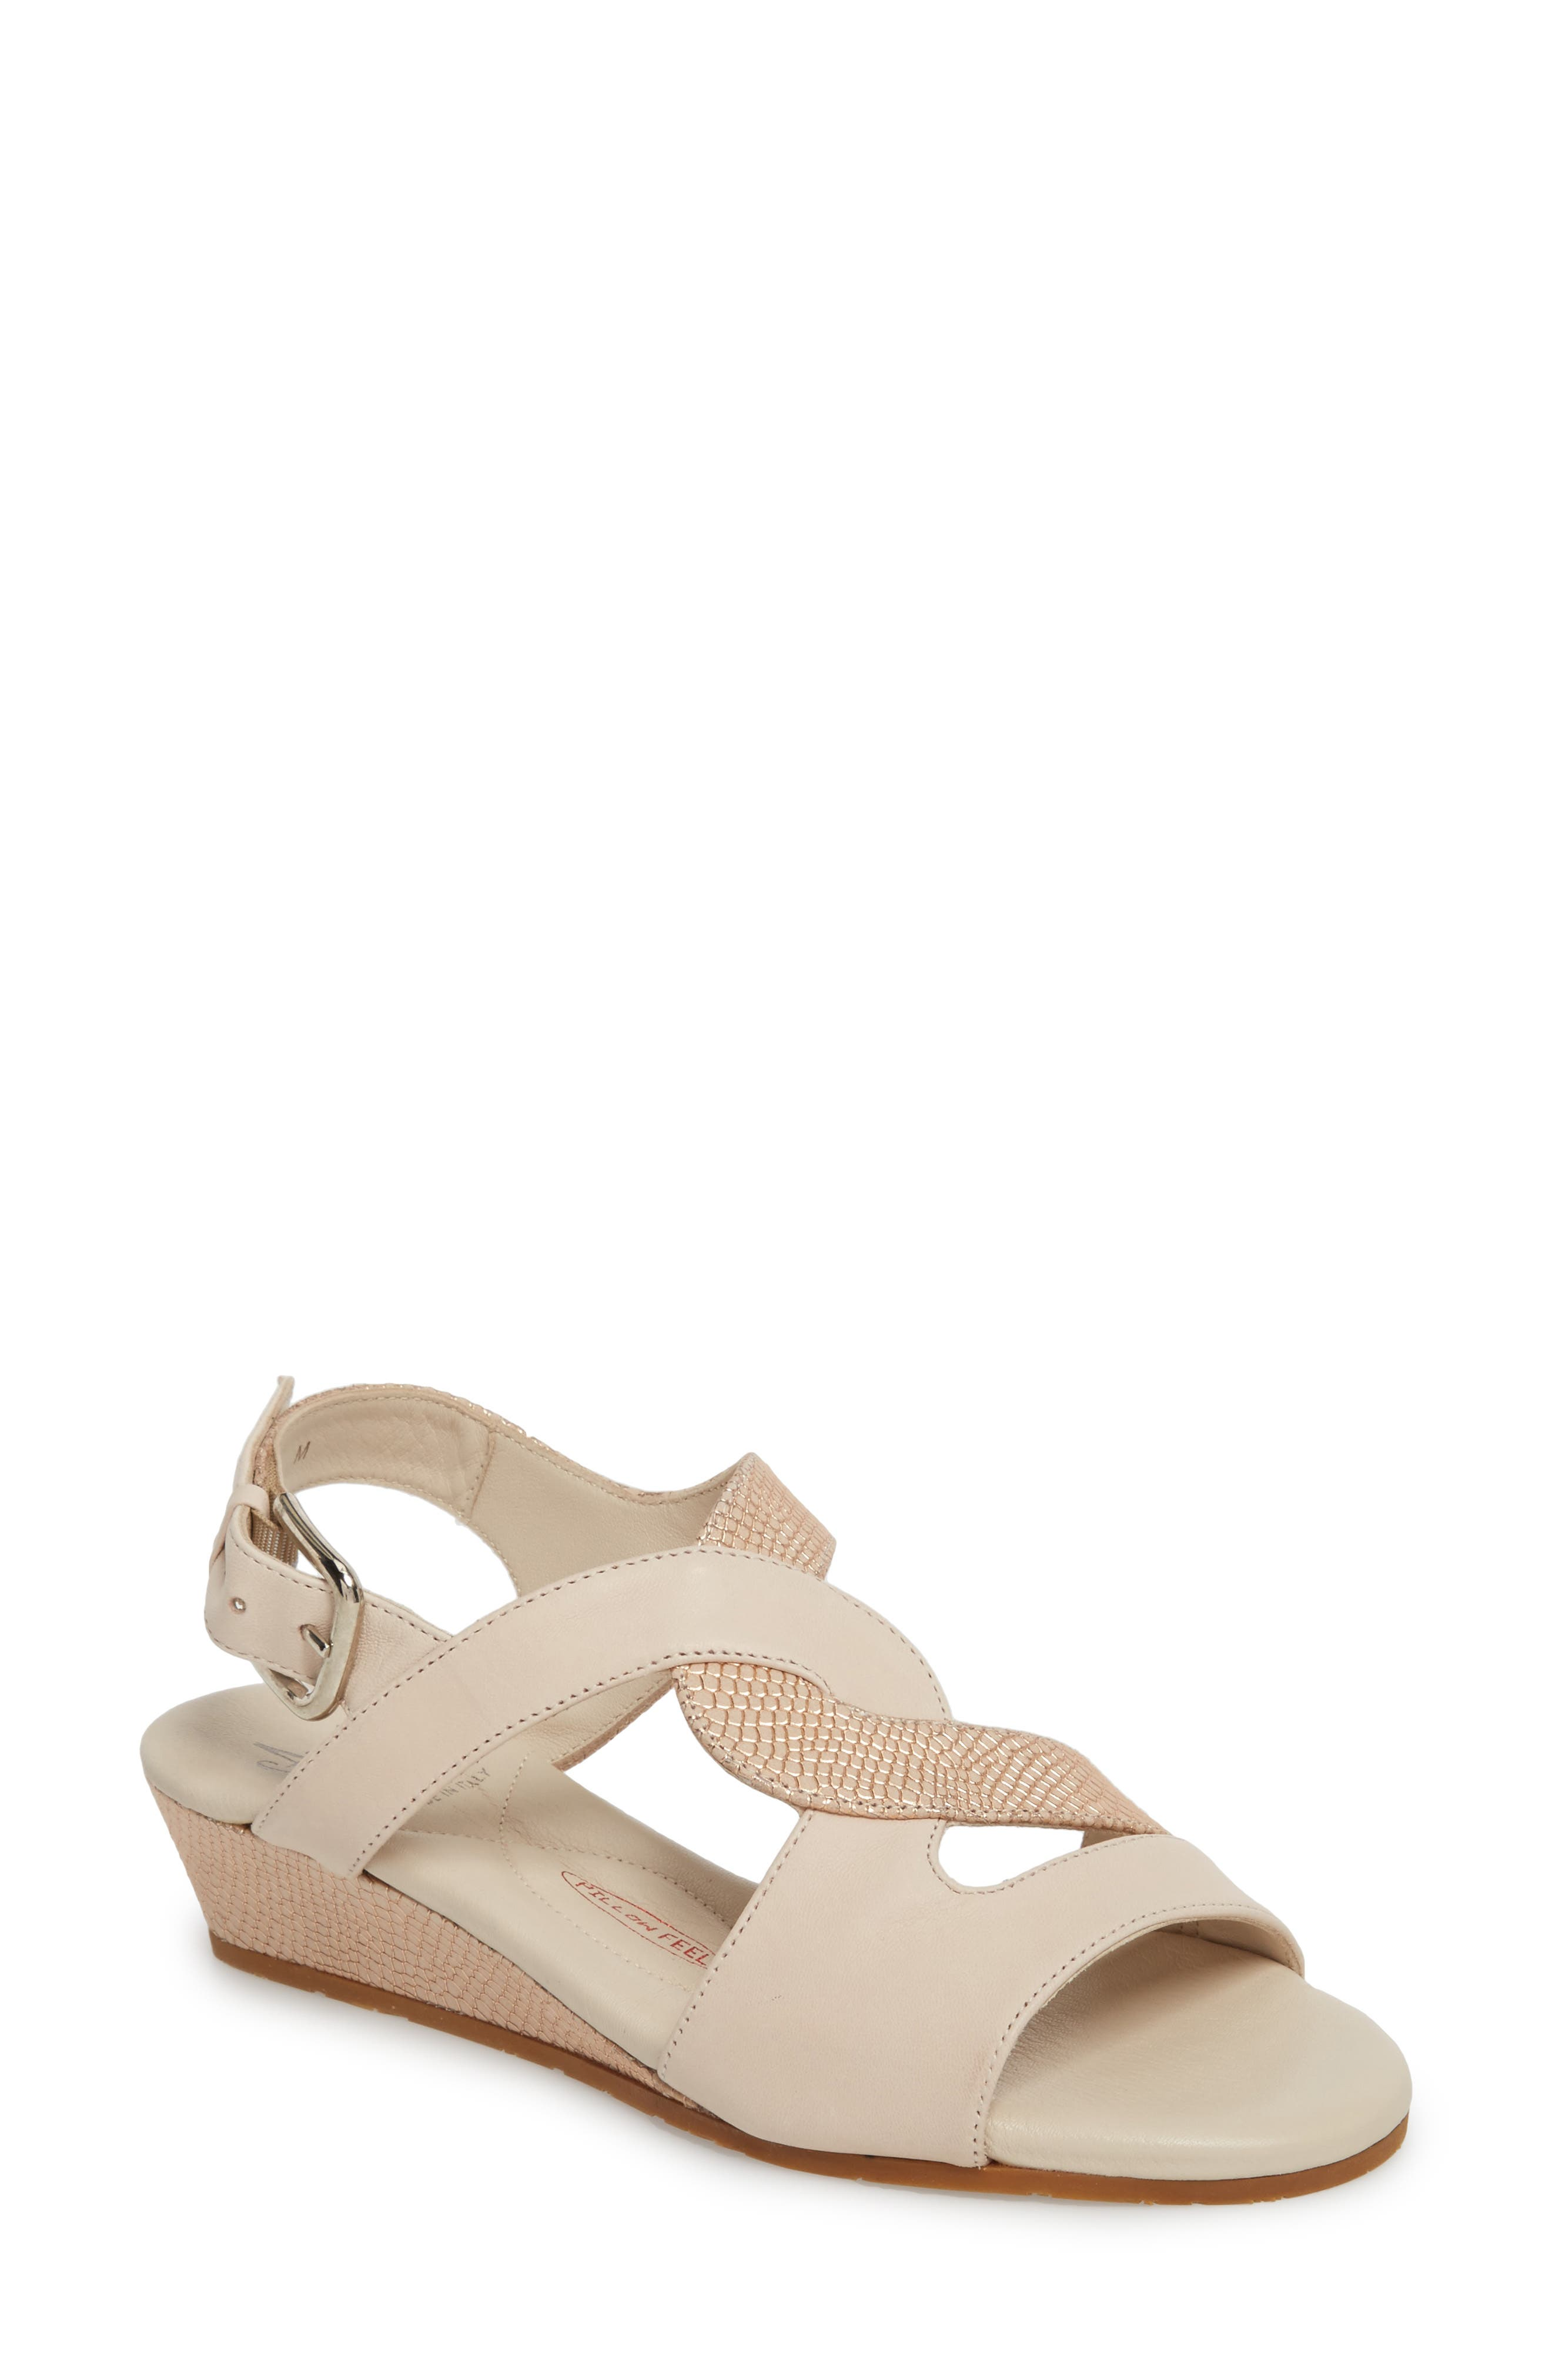 Morosa Wedge Sandal,                         Main,                         color, Beige Leather